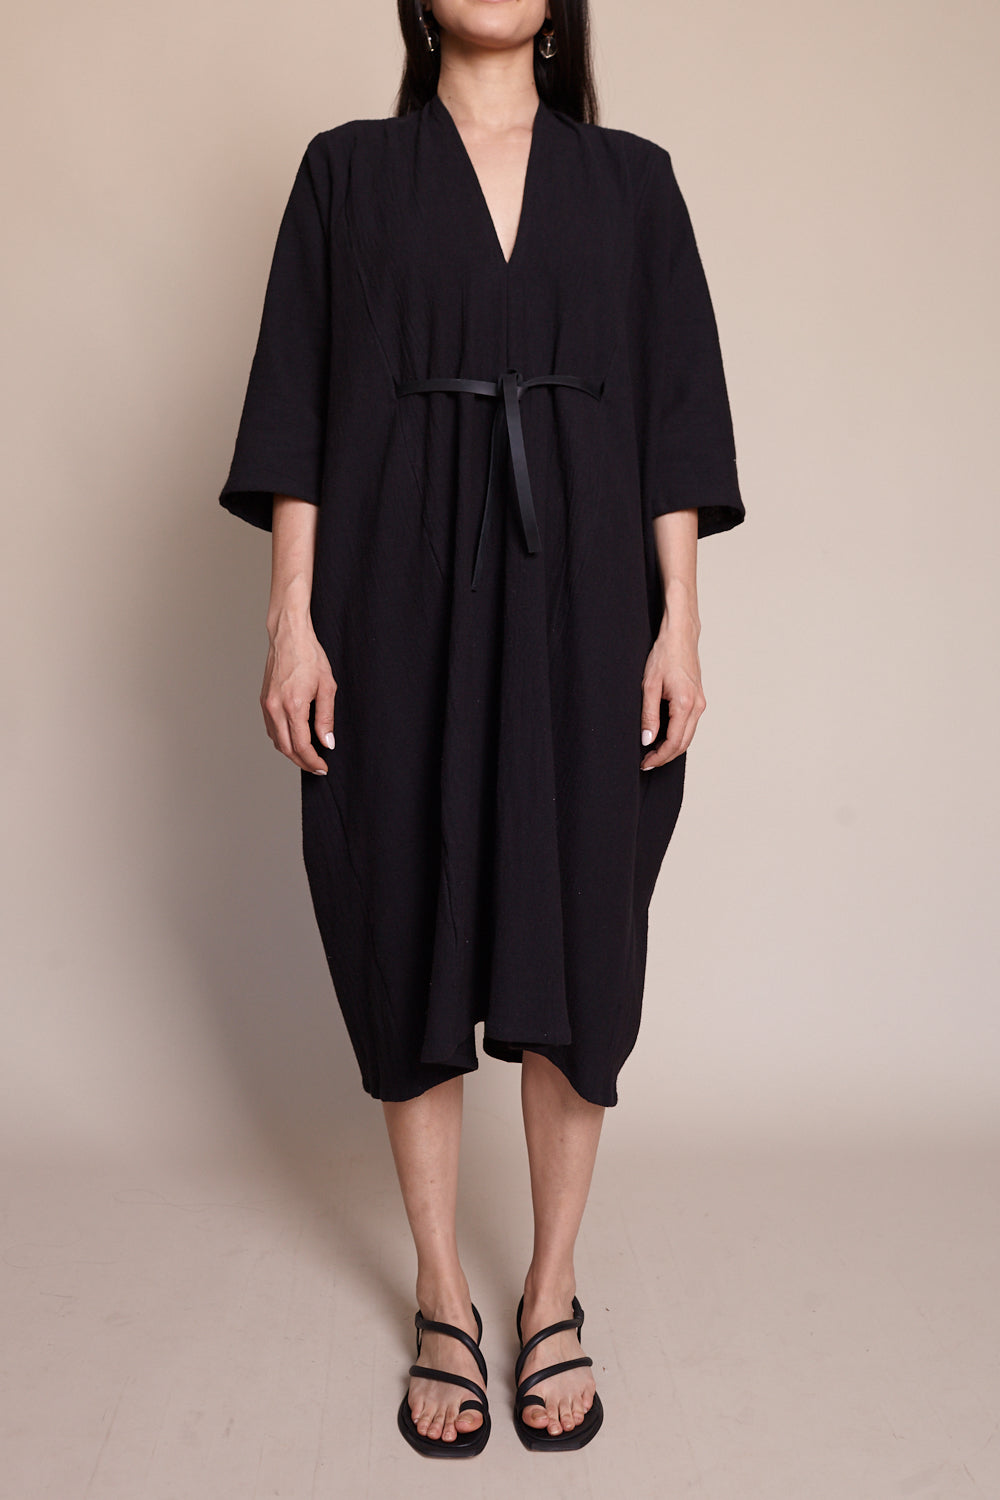 O'Keeffe Dress in Black